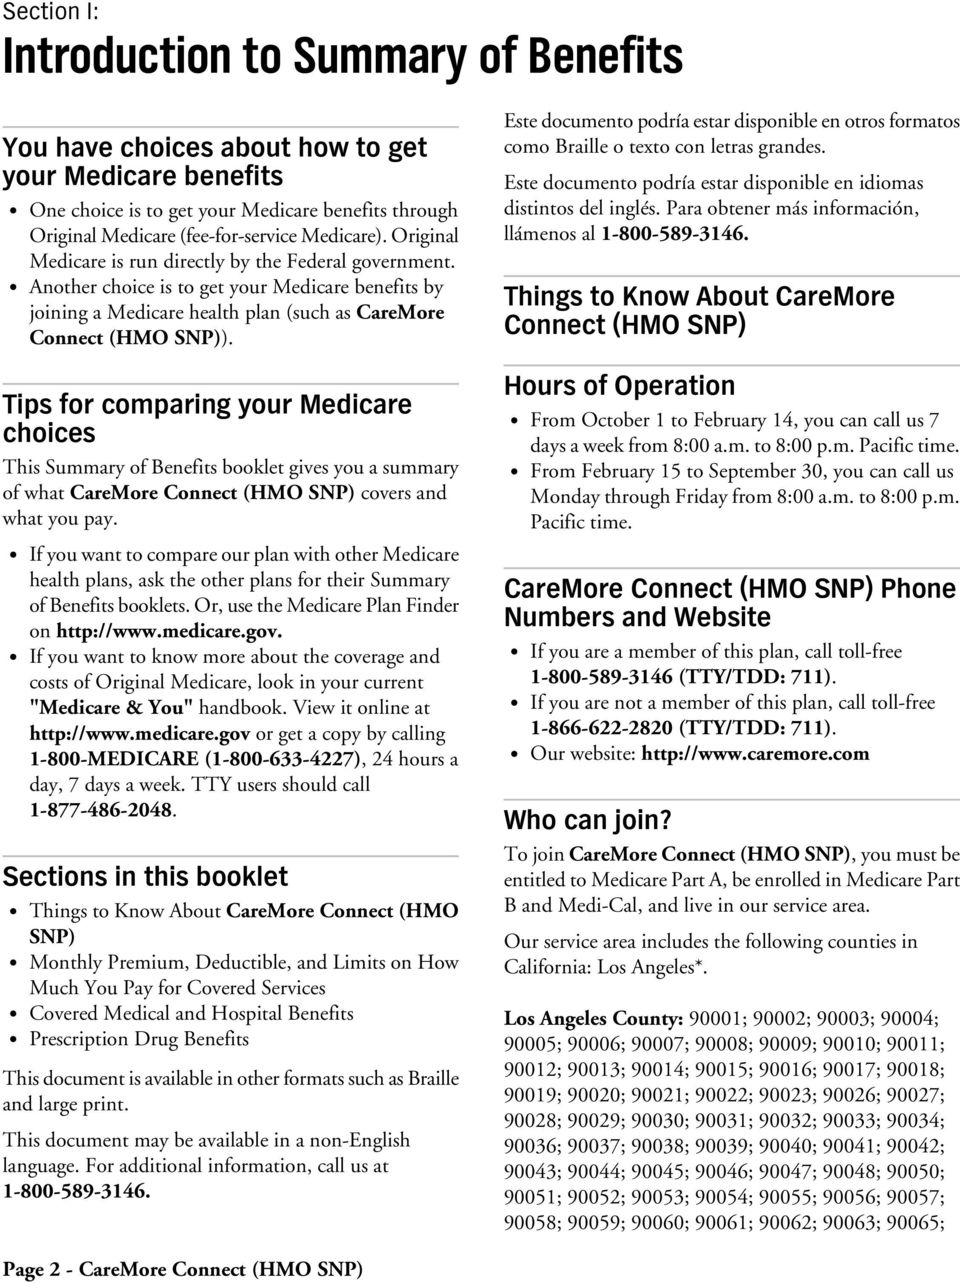 Tips for comparing your Medicare choices This Summary of Benefits booklet gives you a summary of what CareMore Connect (HMO SNP) covers and what you pay.